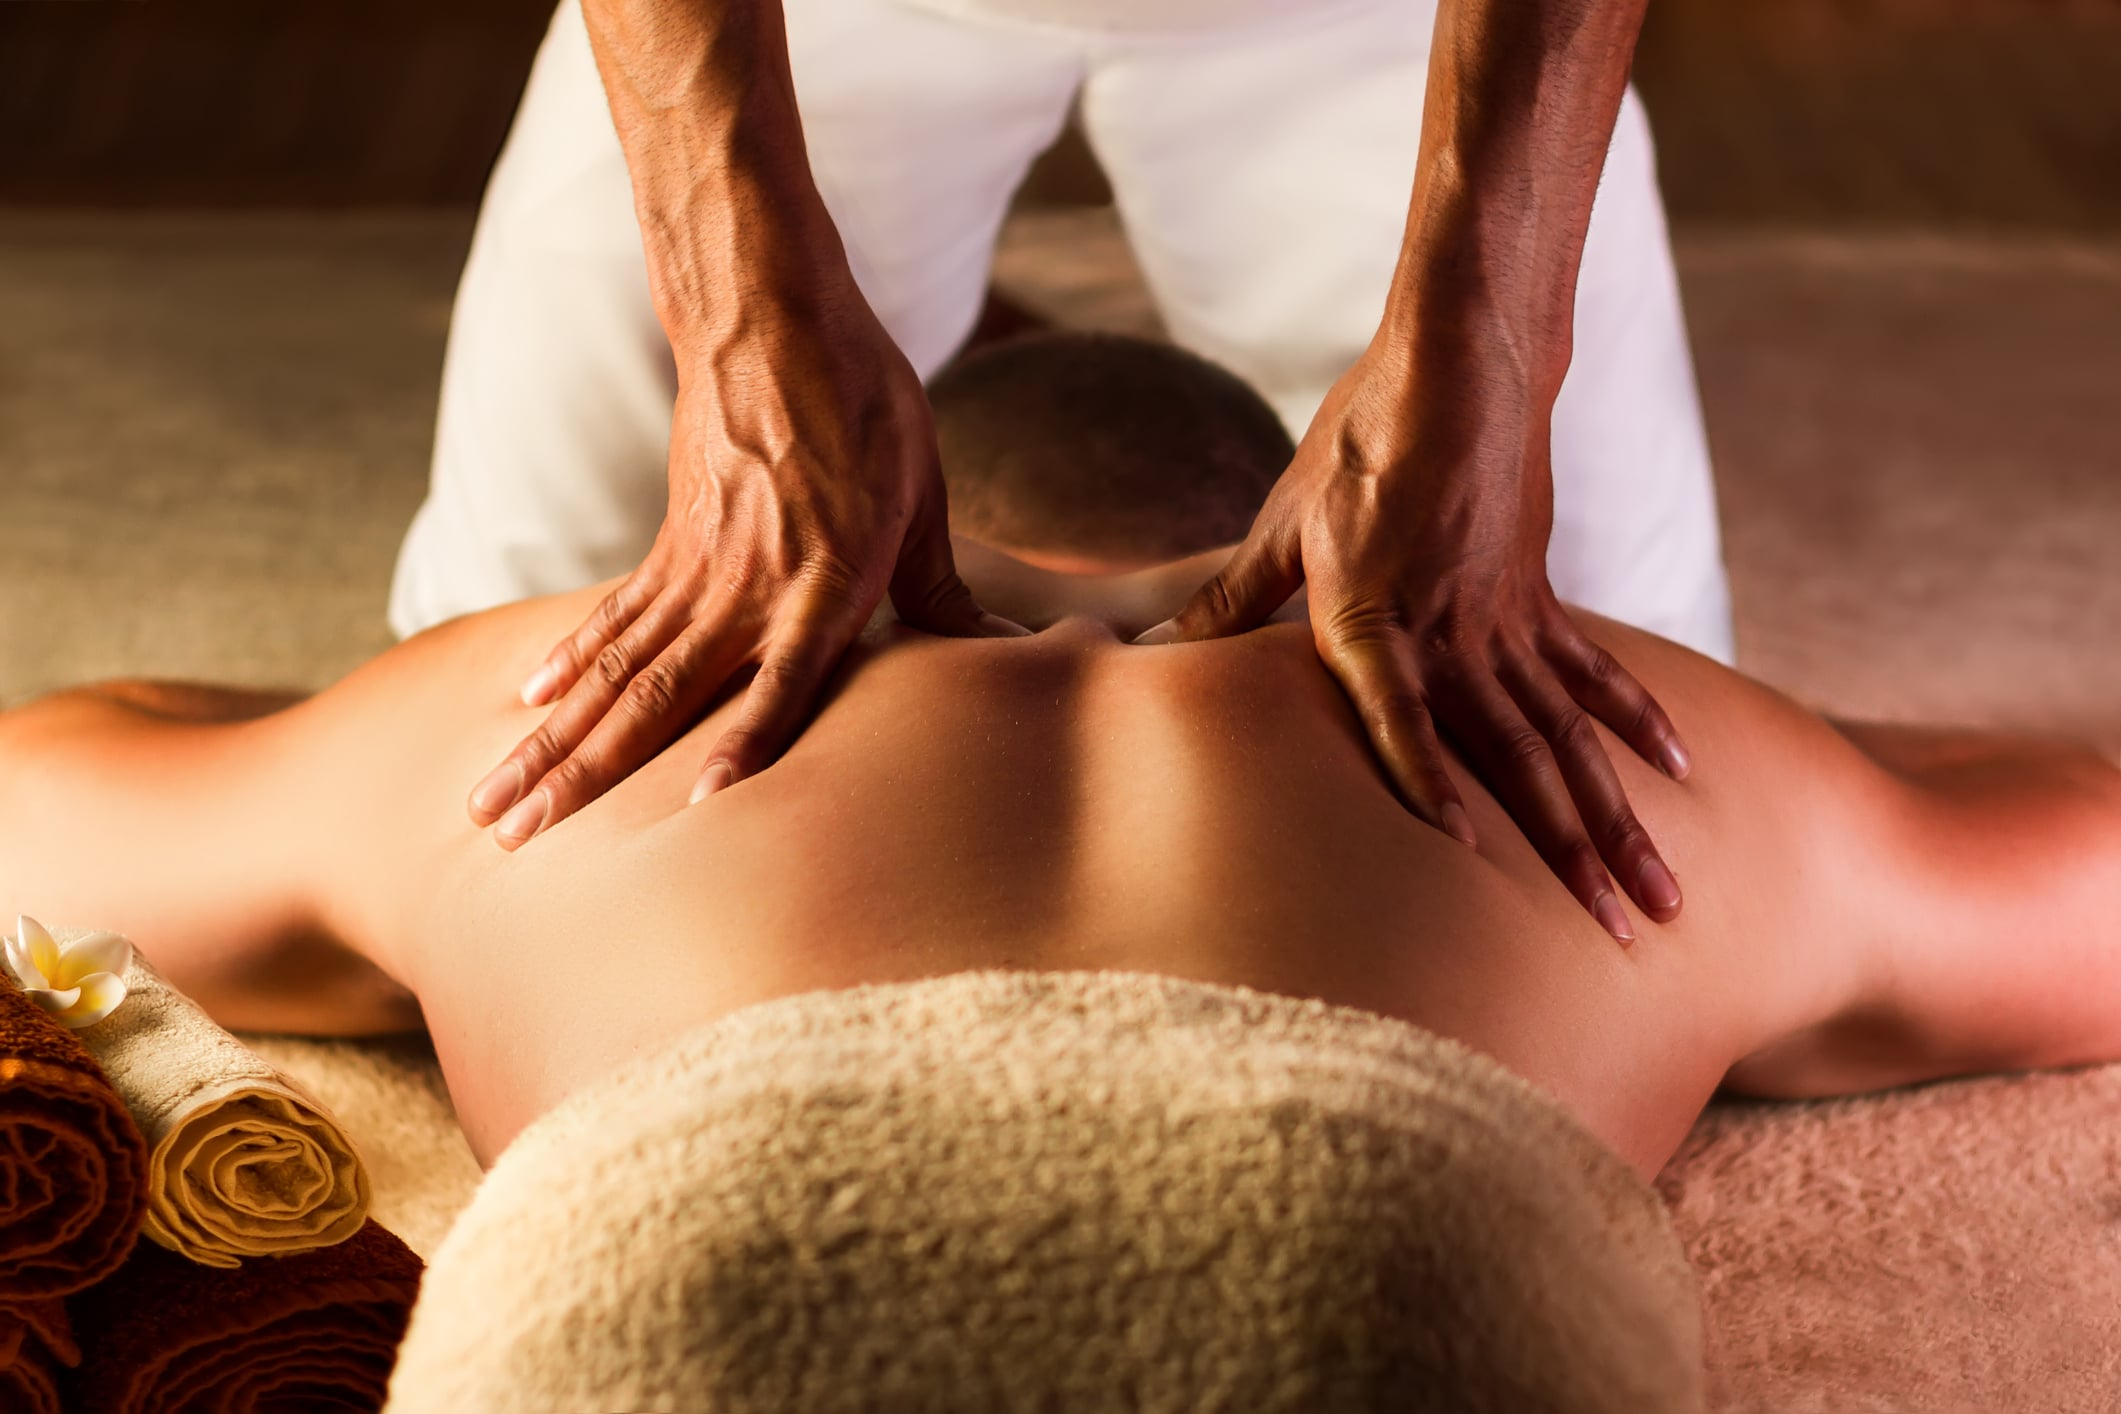 What To Expect From A Massage